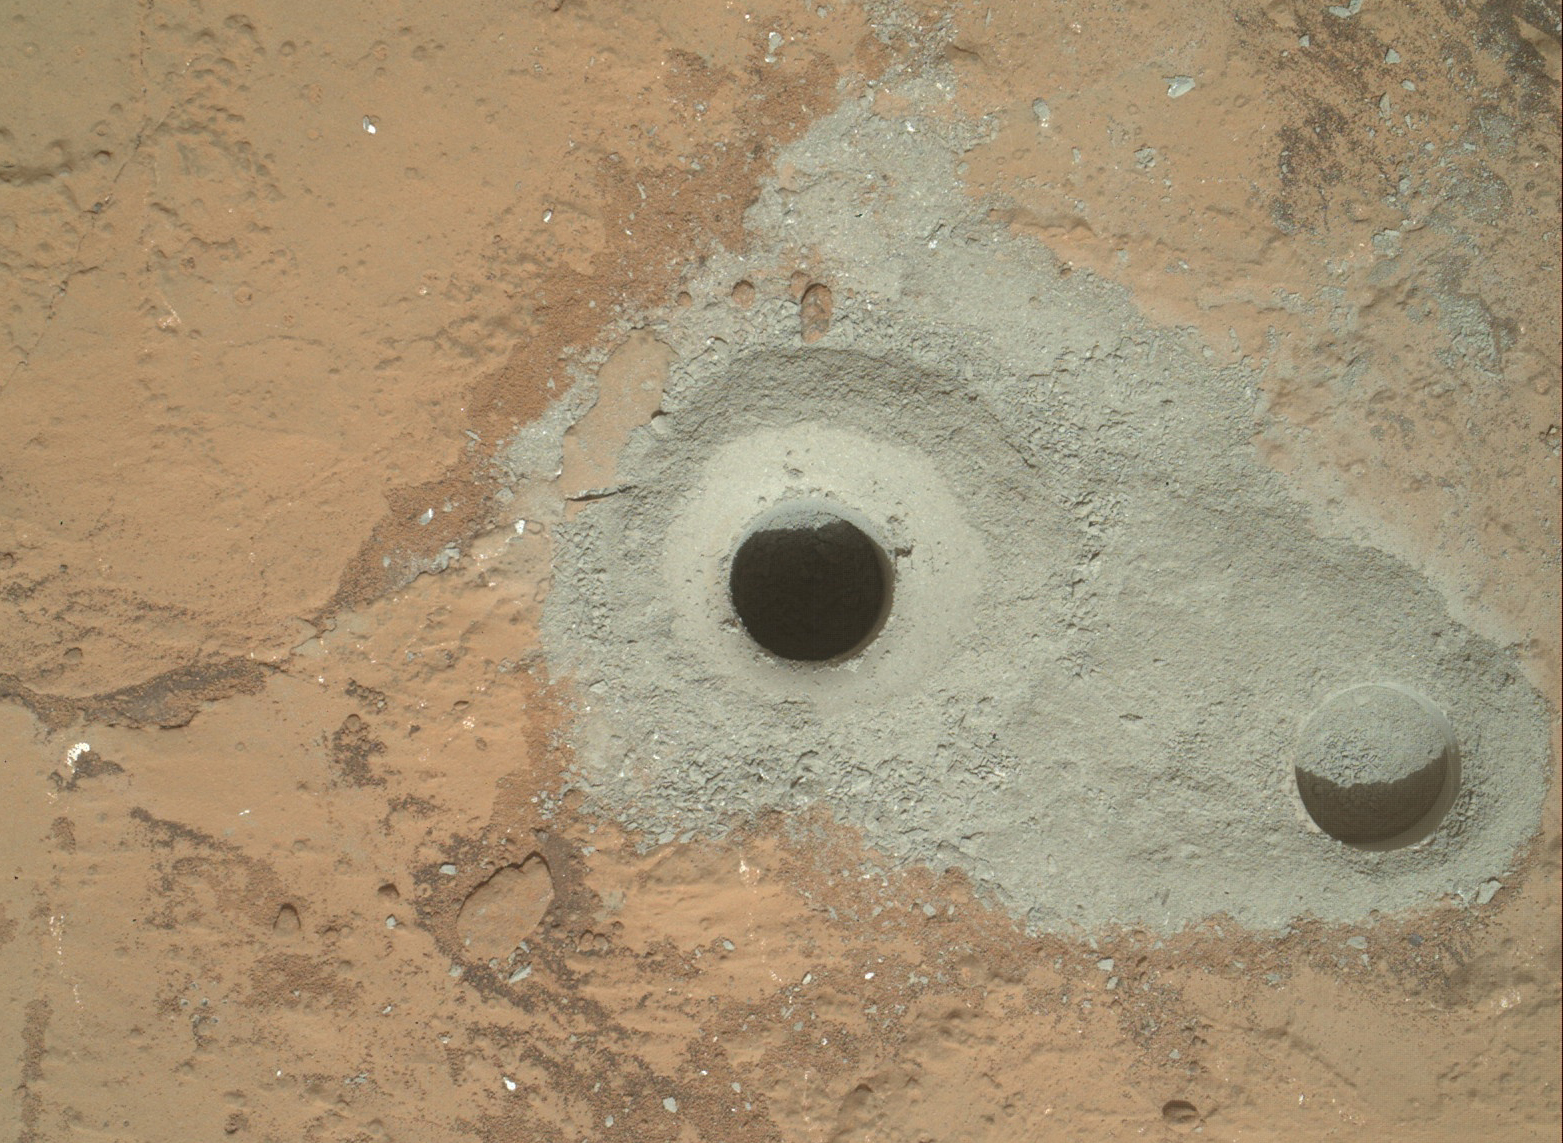 Mars Rover Curiosity's 1st Drill Sample Hole